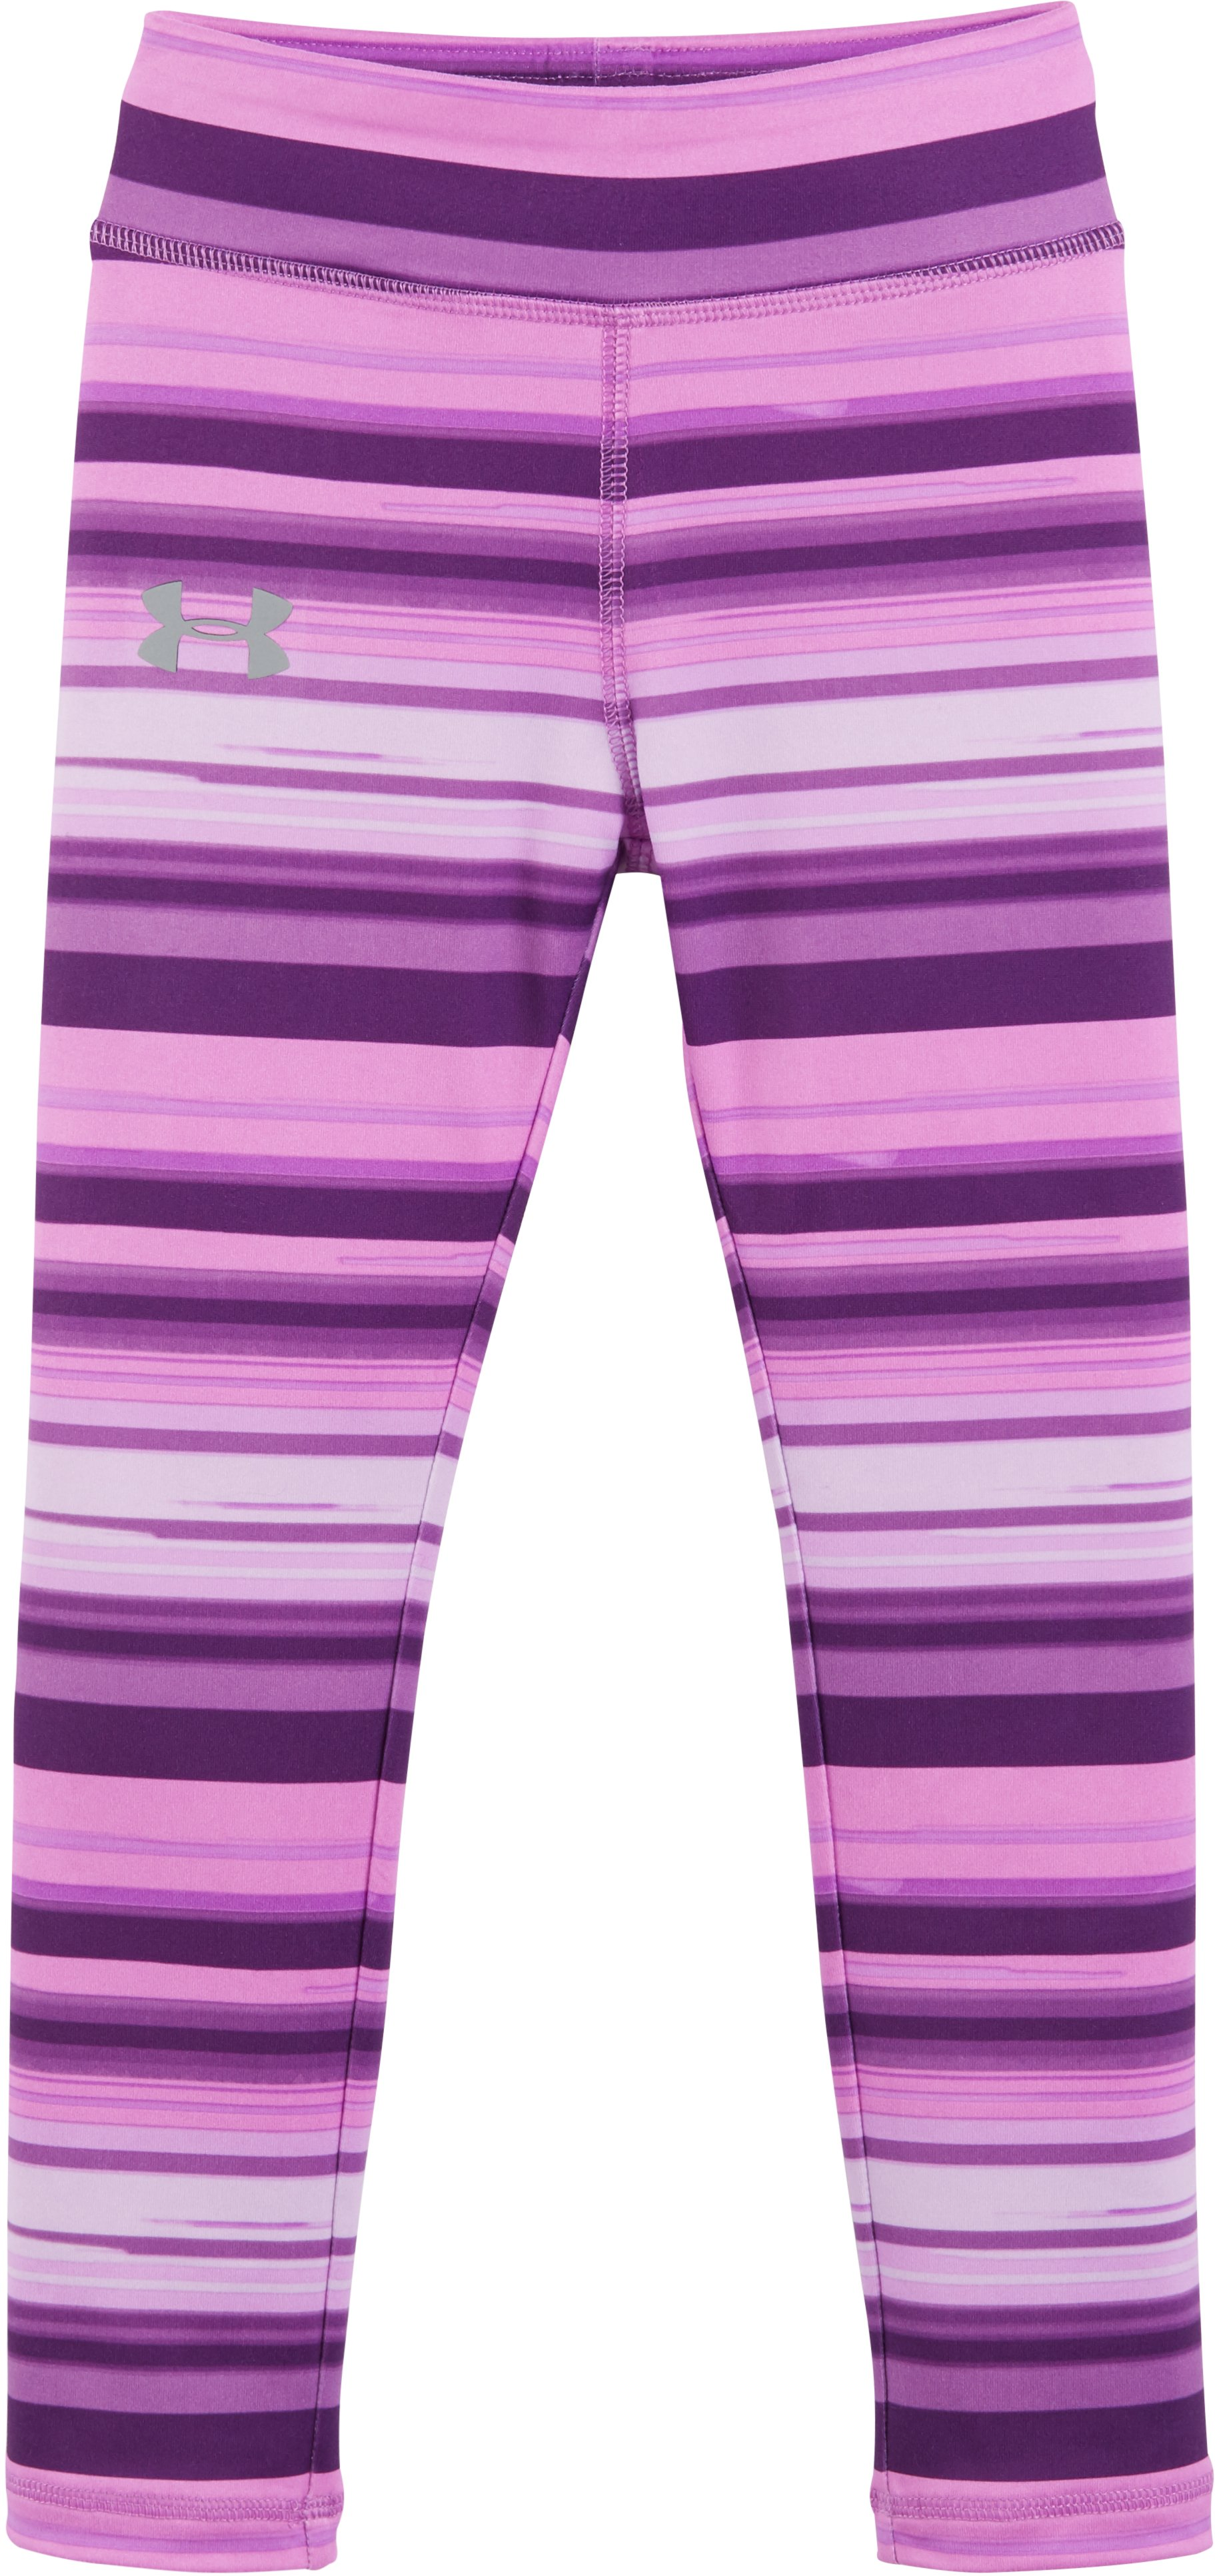 Girls' Pre-School UA Blurred Stripe Shimmer Leggings, Hendrix, zoomed image